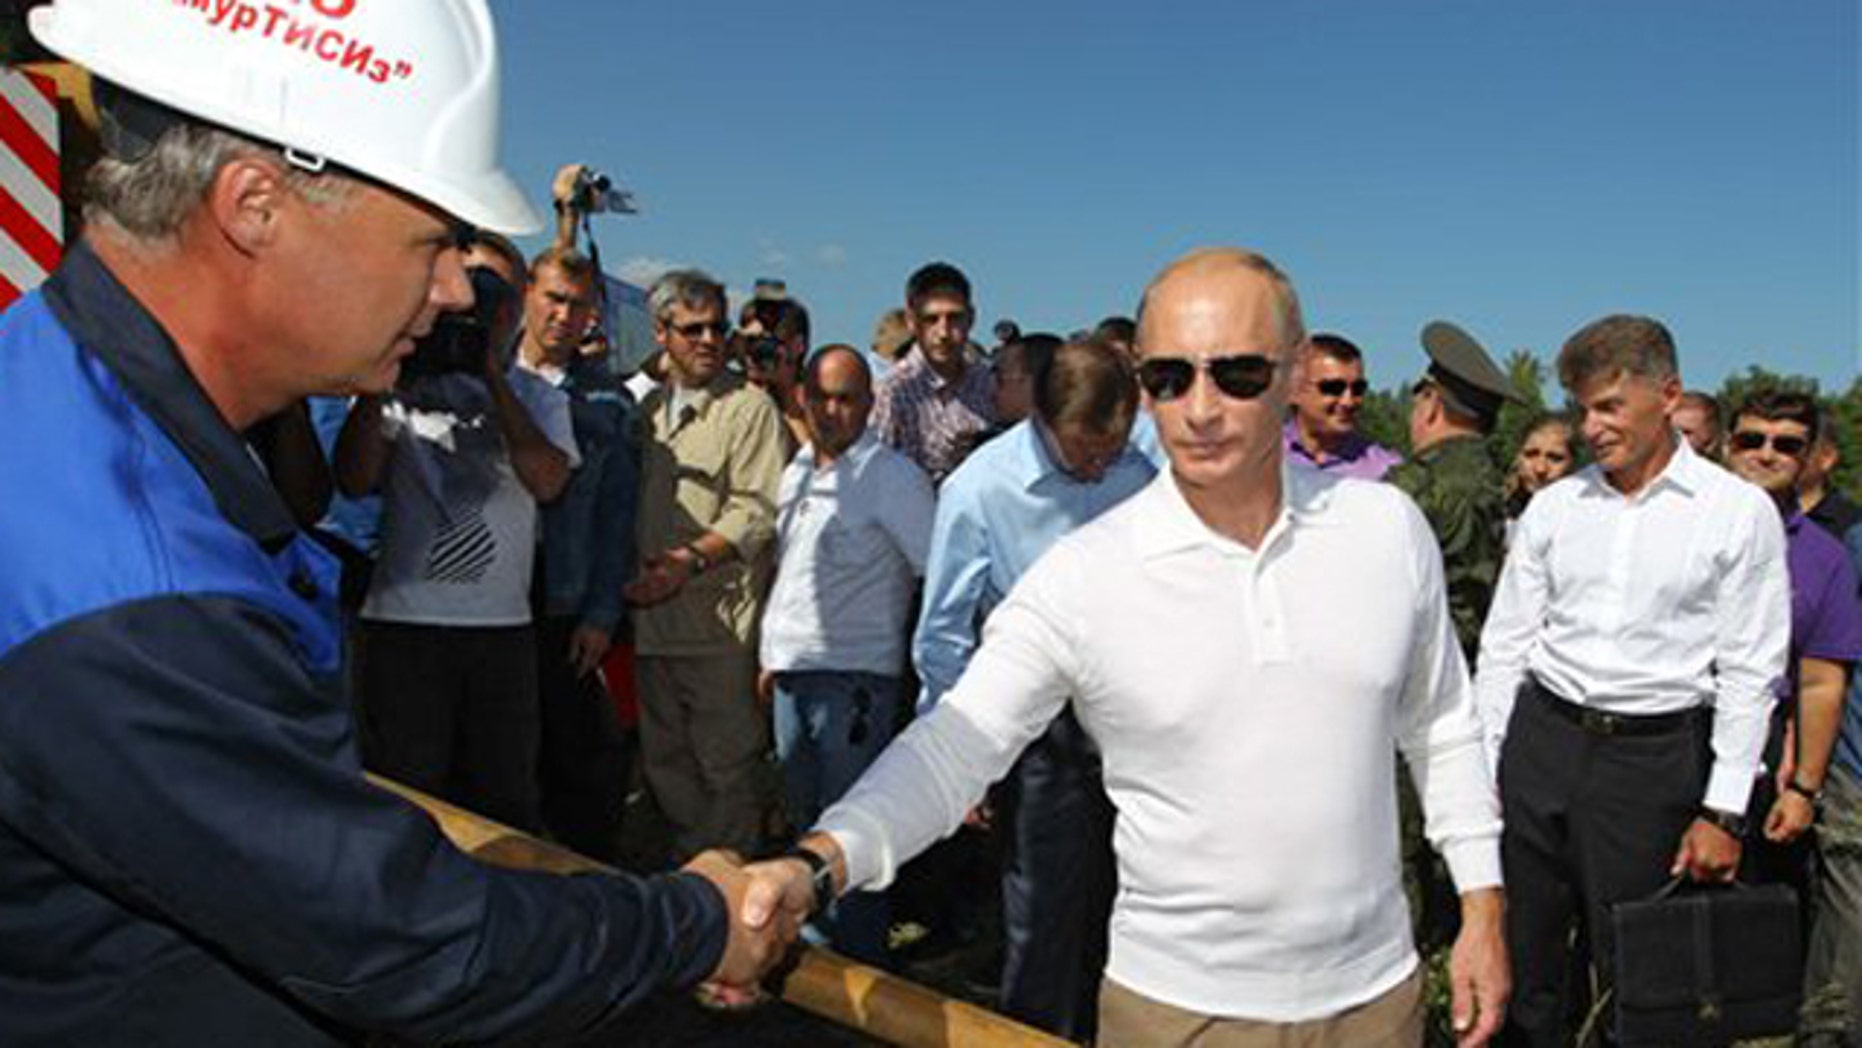 Aug. 28, 2010: Russian Prime Minister Vladimir Putin, right, shakes hands while visiting the construction site of a new launch facility, the Cosmodrome Vostochny, outside Uglegorsk, some 3,600 miles (5800 kilometers) east of Moscow, Russia, Saturday. Russia will launch its manned space missions from a new center in the Far East in 2018, Prime Minister Vladimir Putin said Saturday, as the country seeks greater independence for its space program.